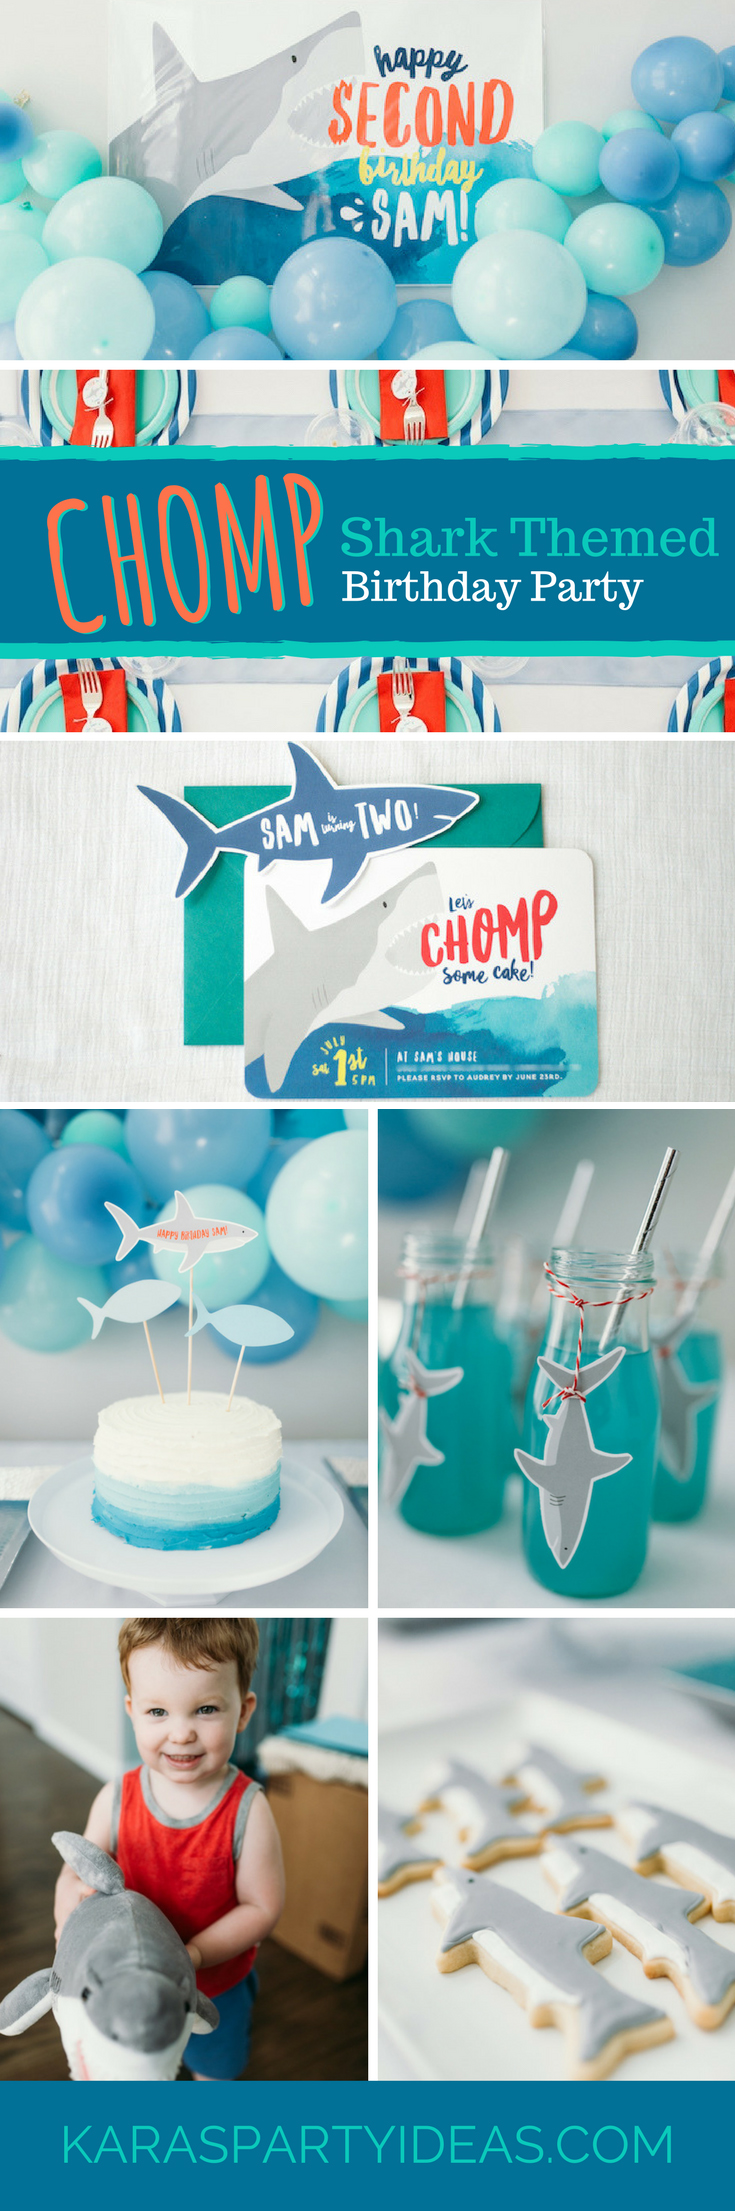 Chomp Shark Themed Birthday Party via Kara's Party Ideas